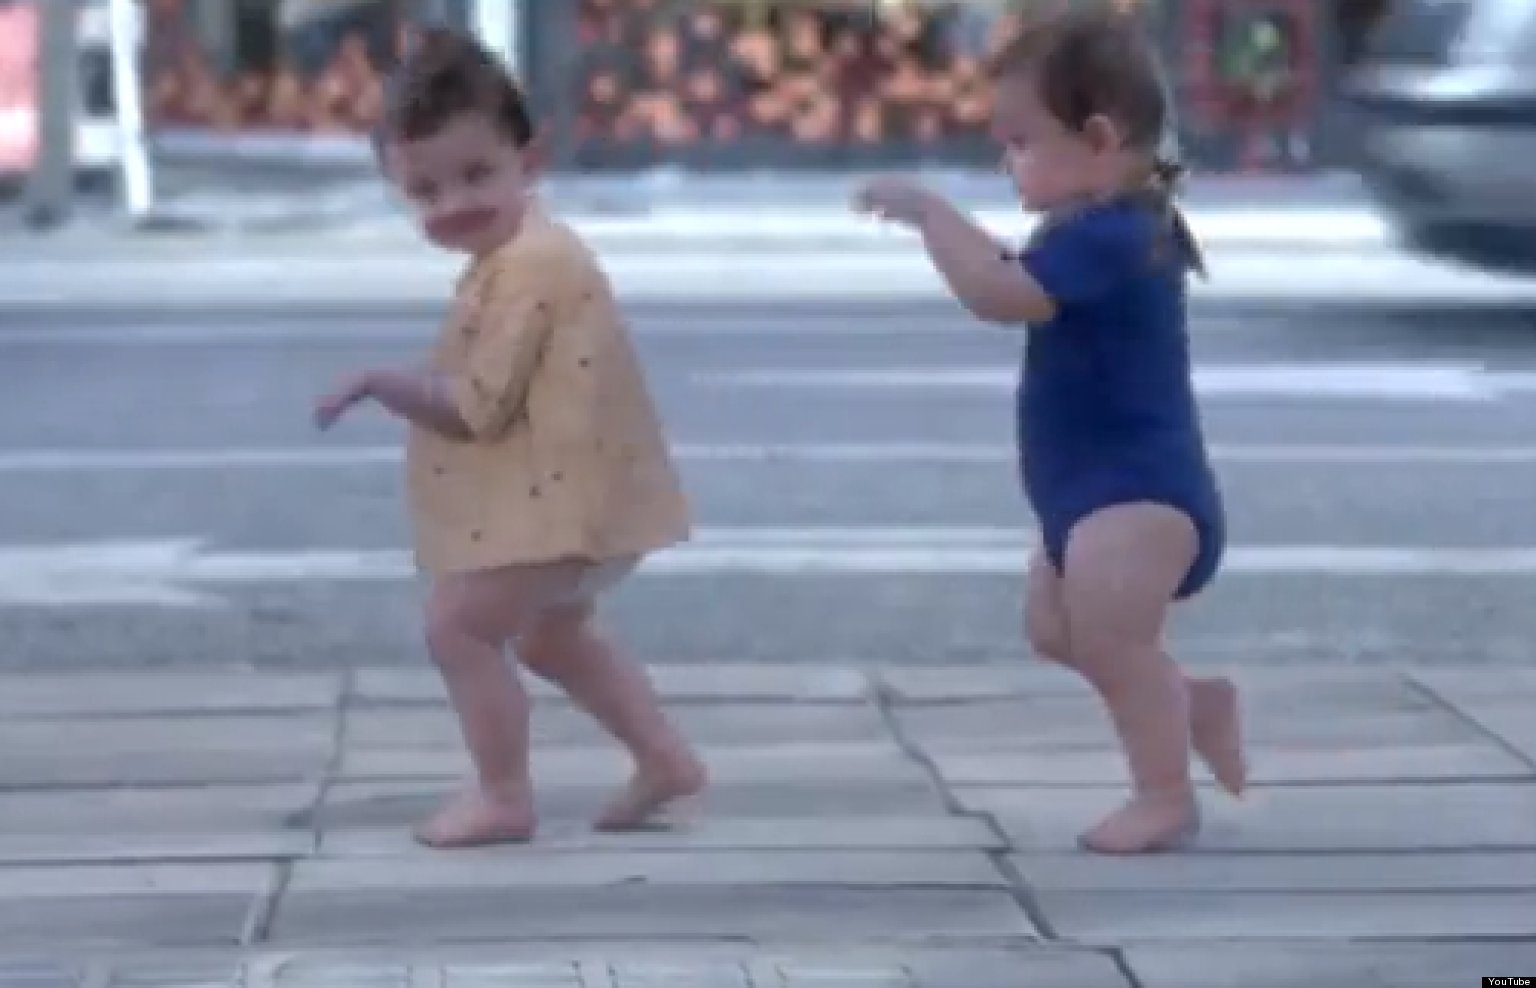 Baby amp me new evian commercial features babies dancing video